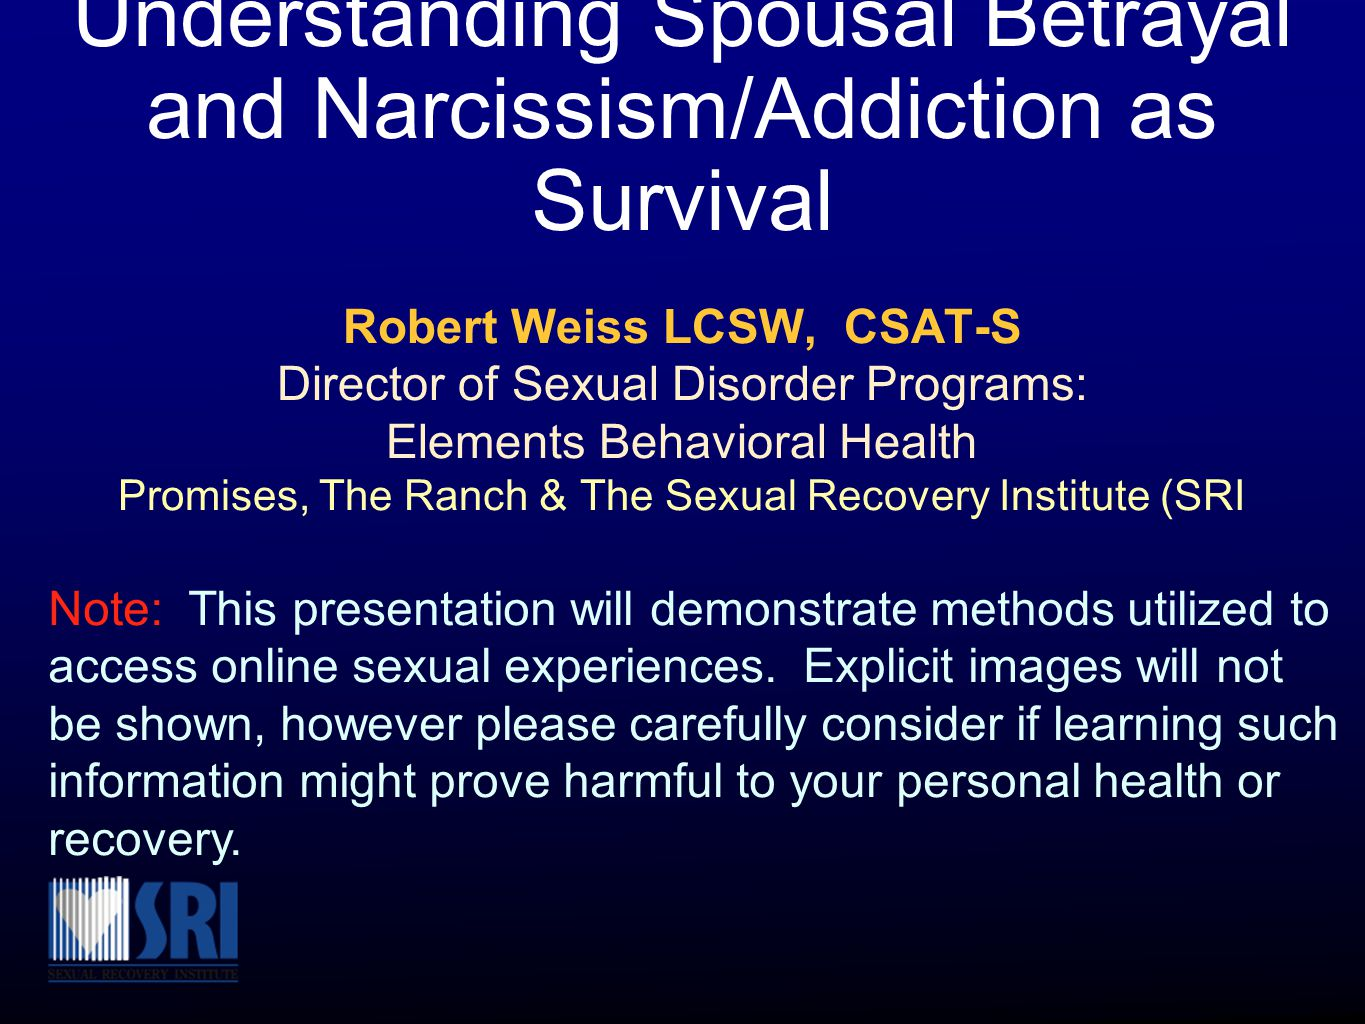 Understanding Spousal Betrayal and Narcissism/Addiction as Survival Robert Weiss LCSW, CSAT-S Director of Sexual Disorder Programs: Elements Behavioral Health Promises, The Ranch & The Sexual Recovery Institute (SRI Note: This presentation will demonstrate methods utilized to access online sexual experiences.